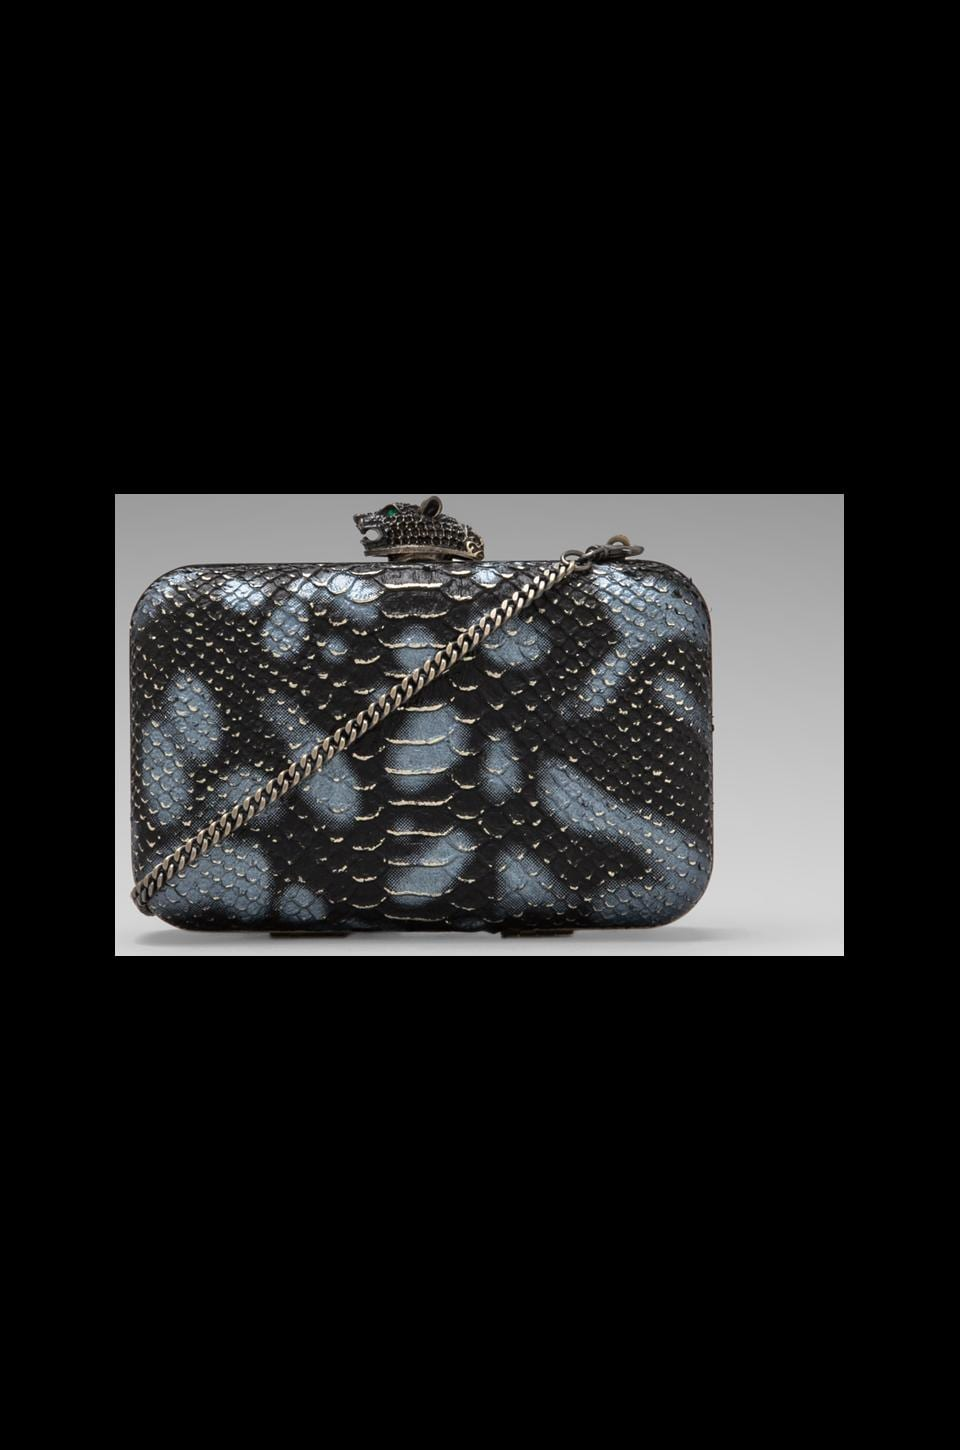 House of Harlow 1960 House of Harlow Dylan Clutch in Black/White/Gold Foil Snake